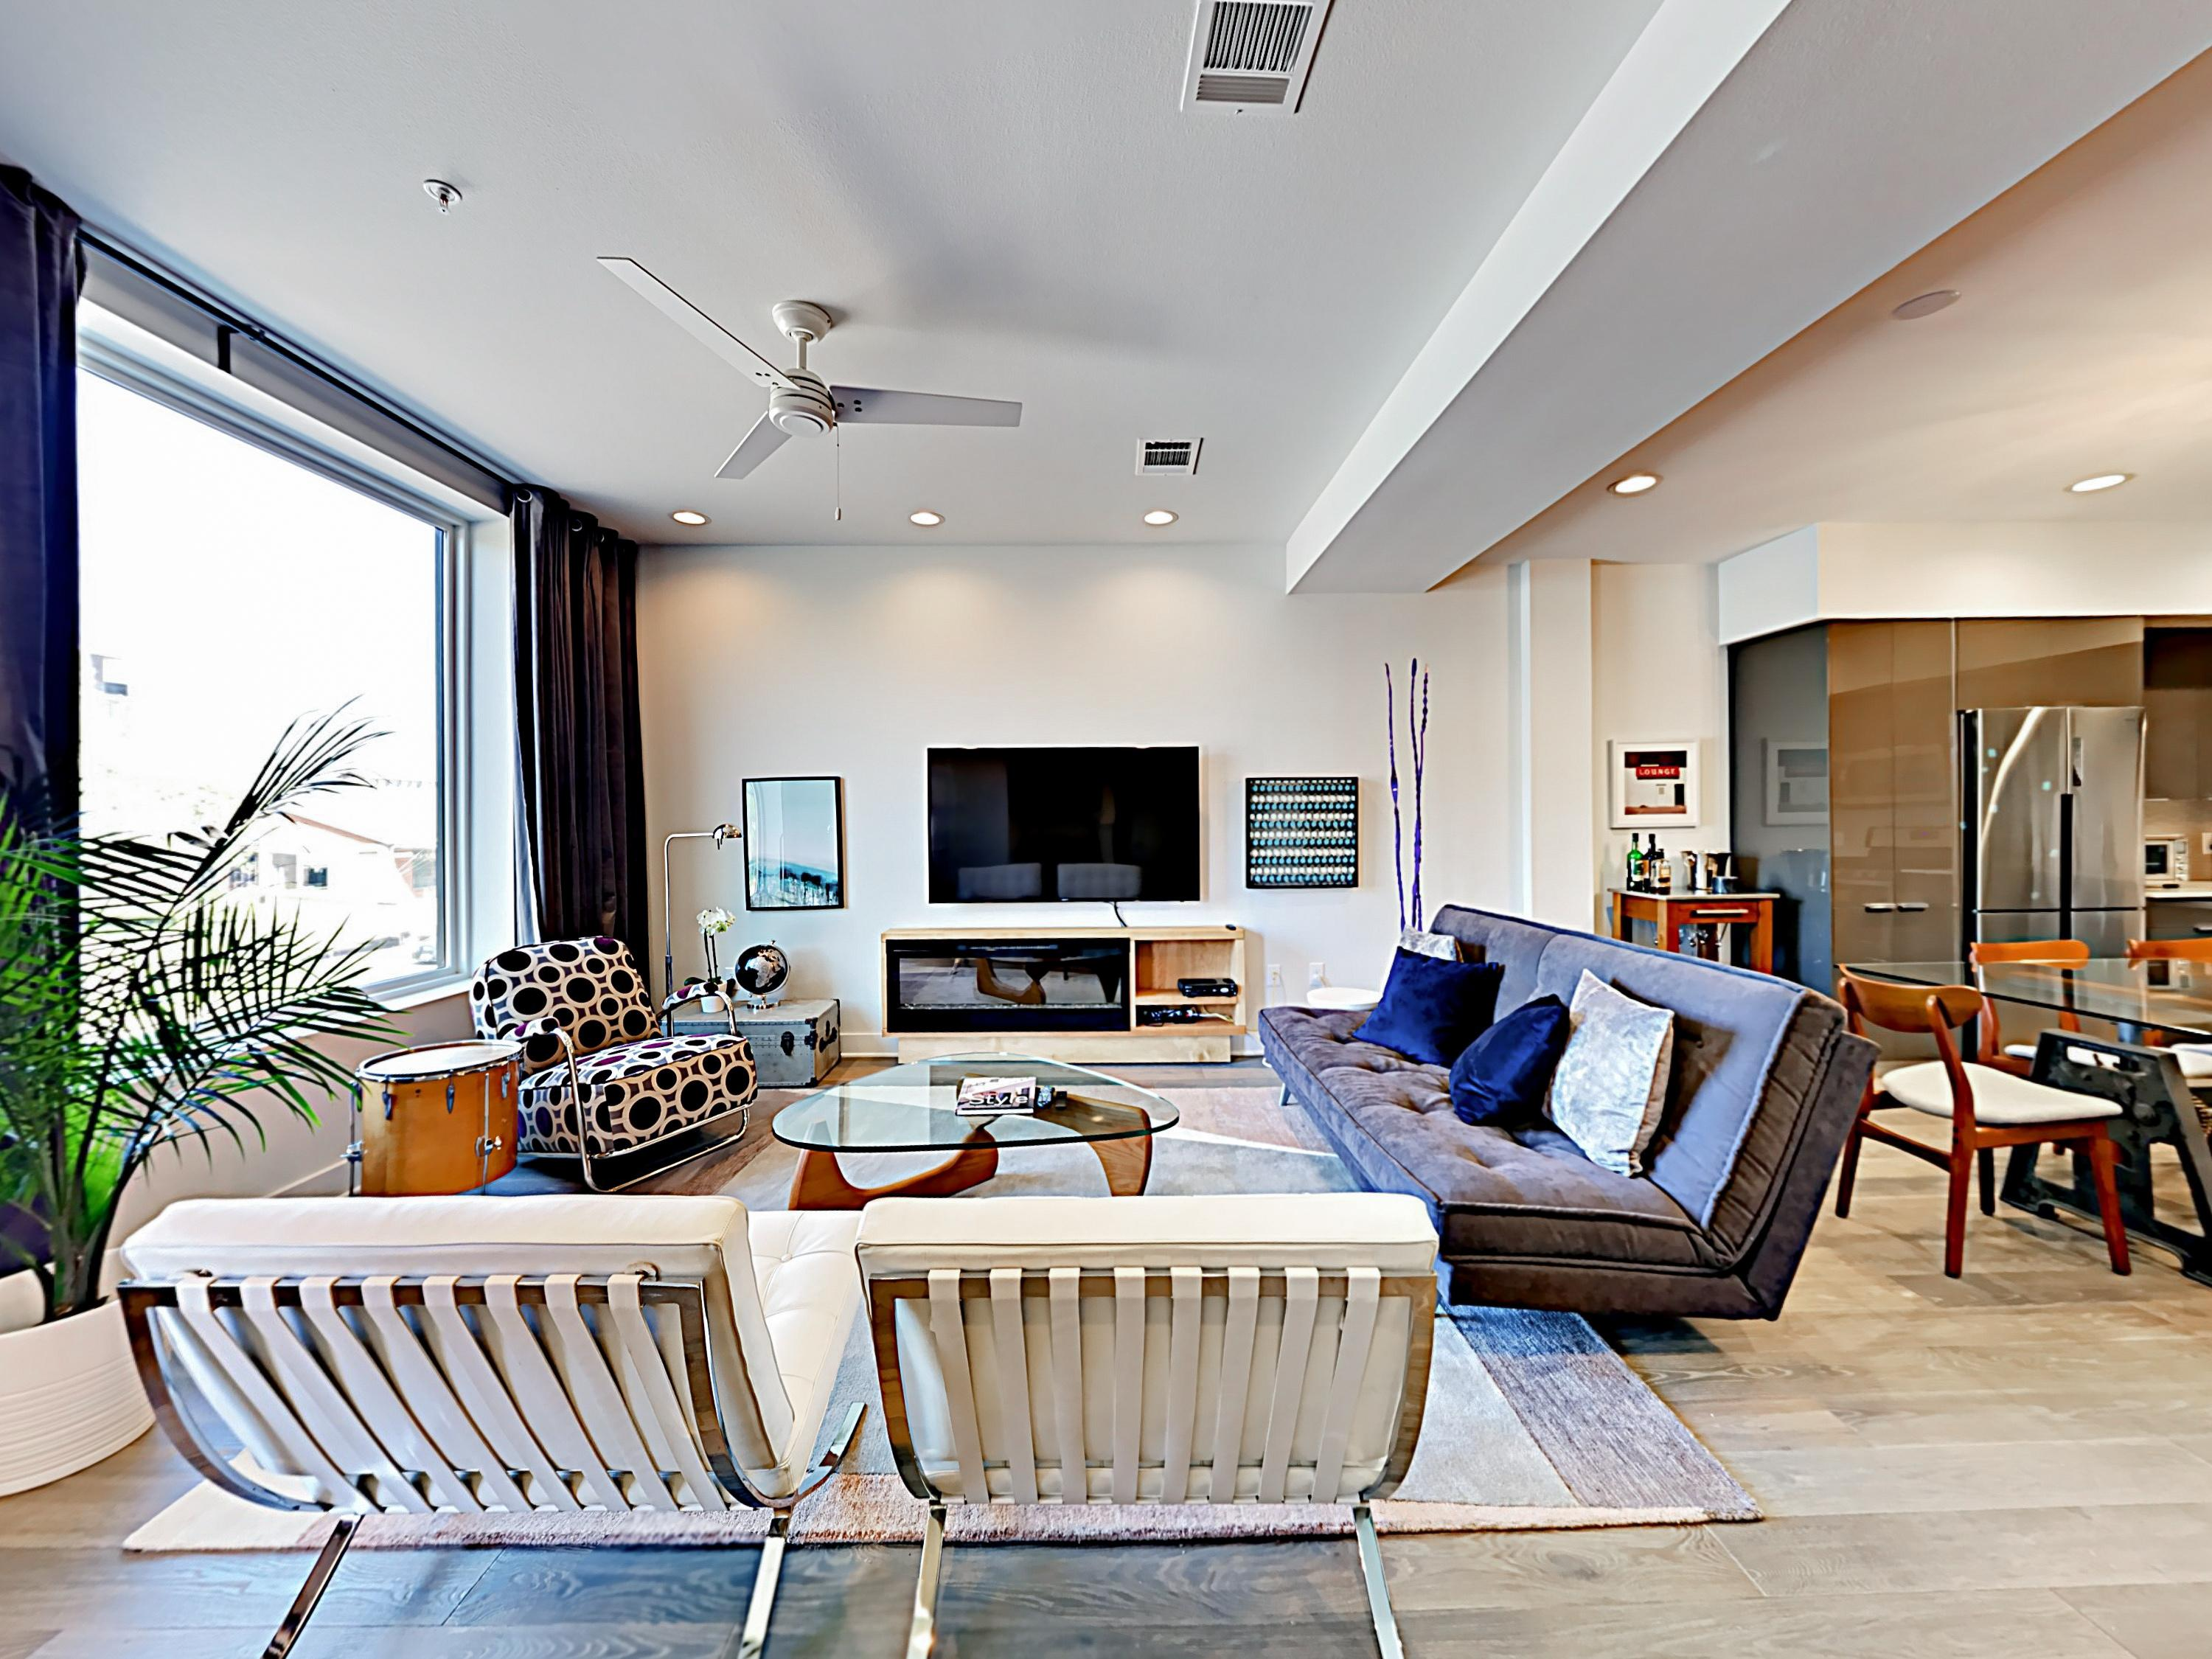 Welcome to Austin! This stylish condo is professionally managed by TurnKey Vacation Rentals.